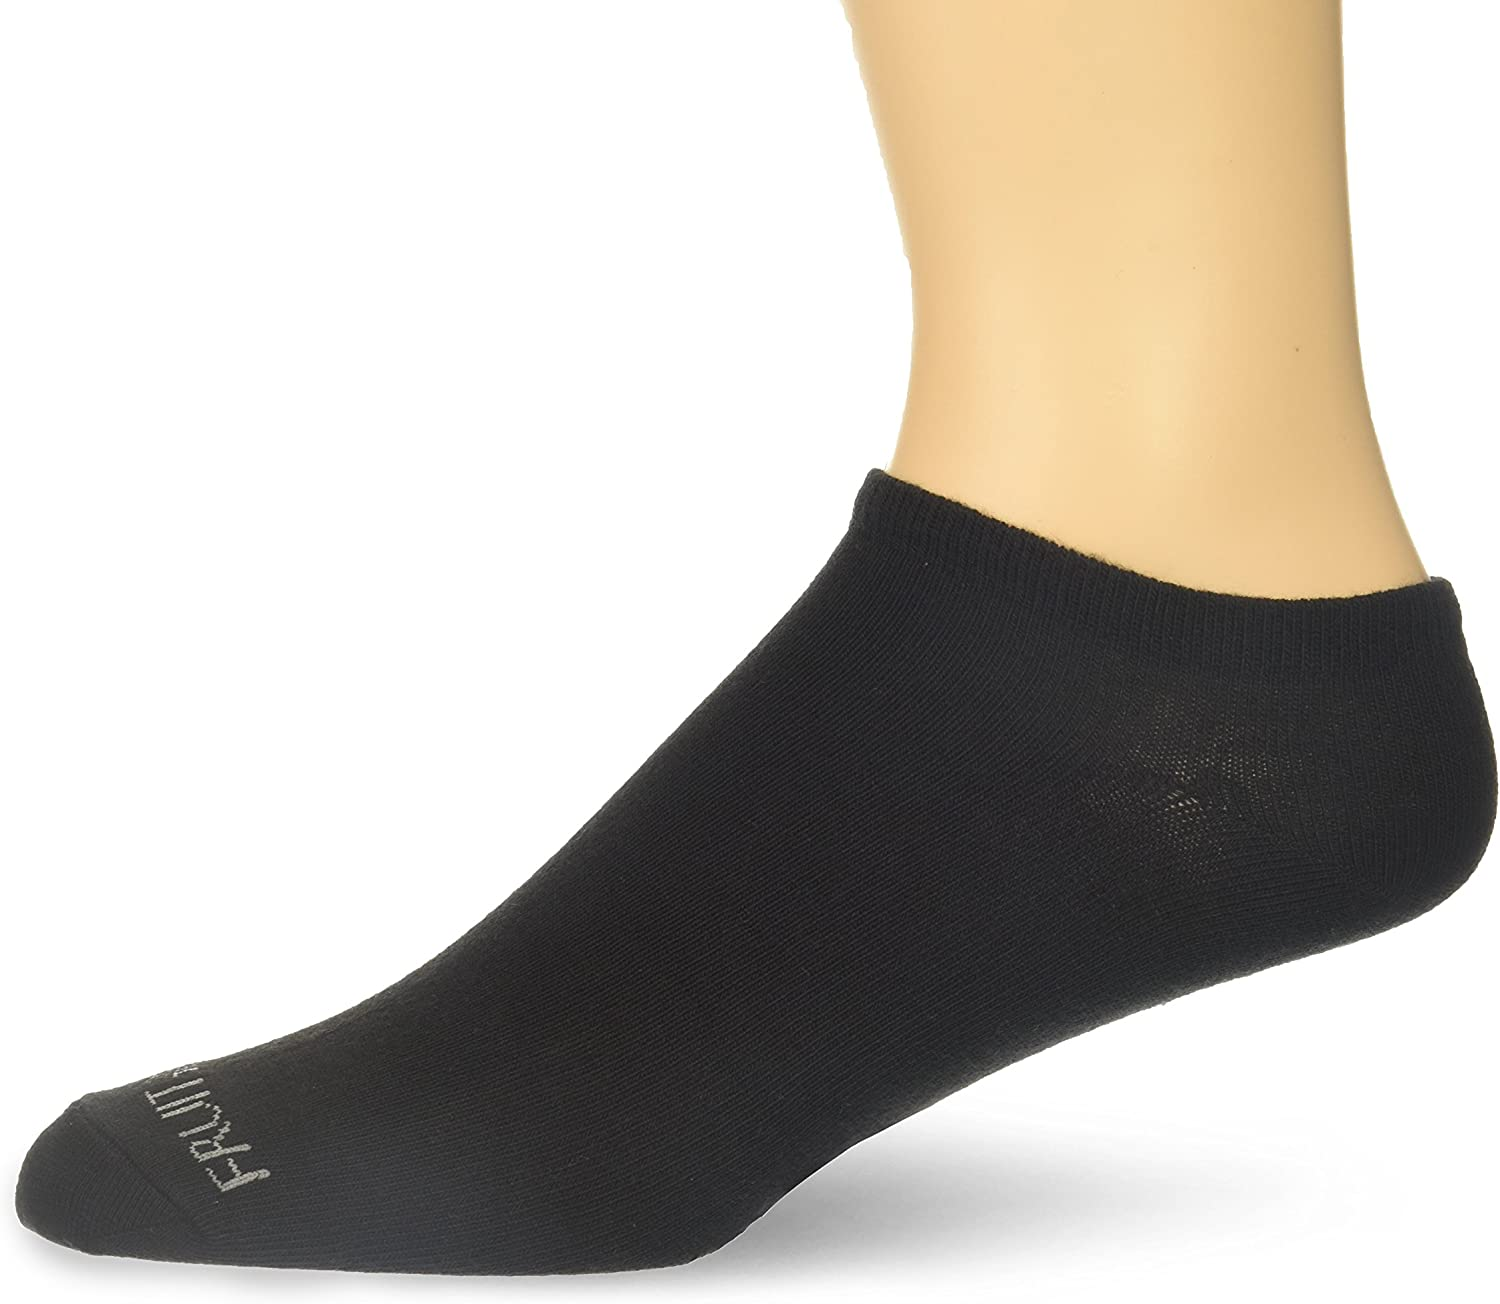 Fruit of the Loom Mens Invisible No Show Breathable Liner Socks 4 Pack